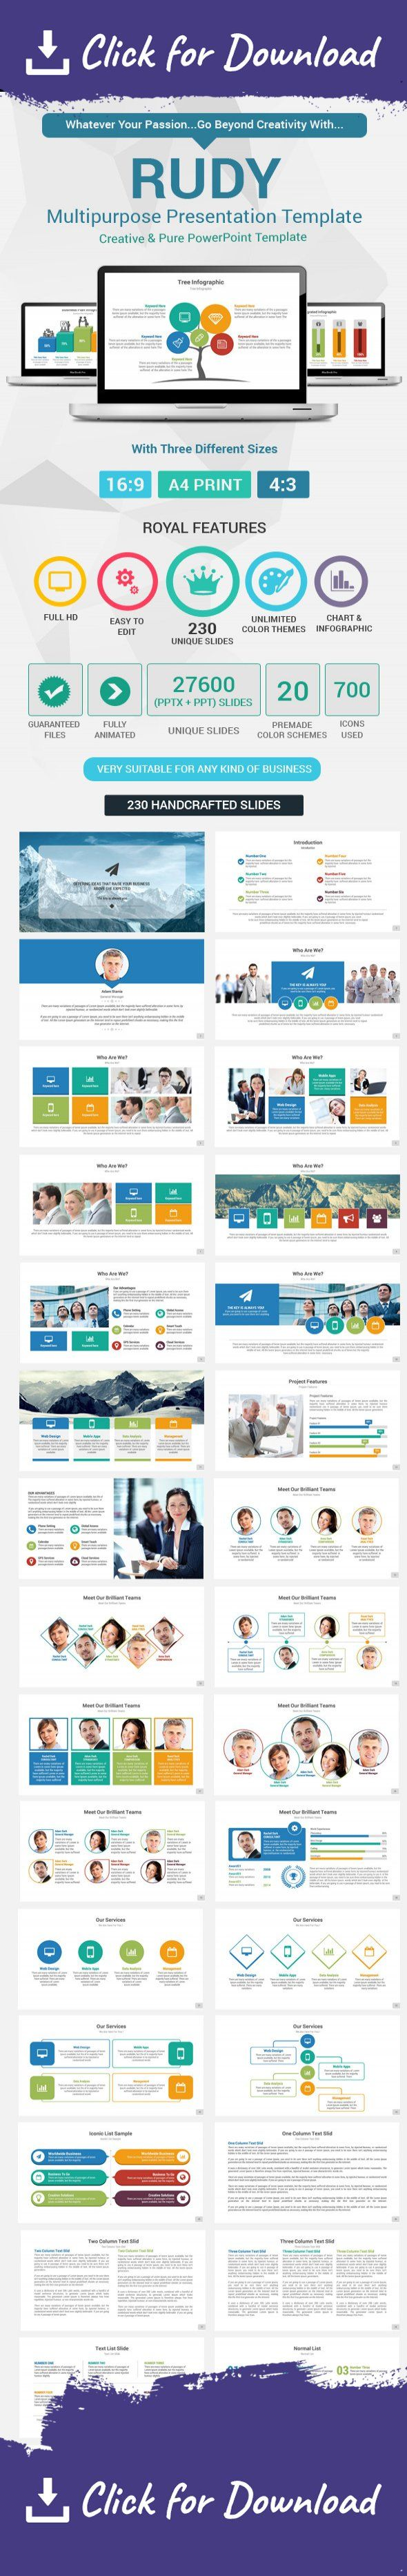 animated, awesome, blue, business, charts, clean, client, colored, corporate, creative, infographic, maps, media, minimal, modern, multipurpose, portfolio, powerpoint, powerpoint presentation, powerpoint template, pptx, professional, projects, puzzle, social, stage, stats, template, timeline Find What You Need With Our Super Creative Presentation Collection     Rudy Multipurpose PowerPoint Presentation Template All you need just in one Package. Get it now! A PowerPoint Presentation…